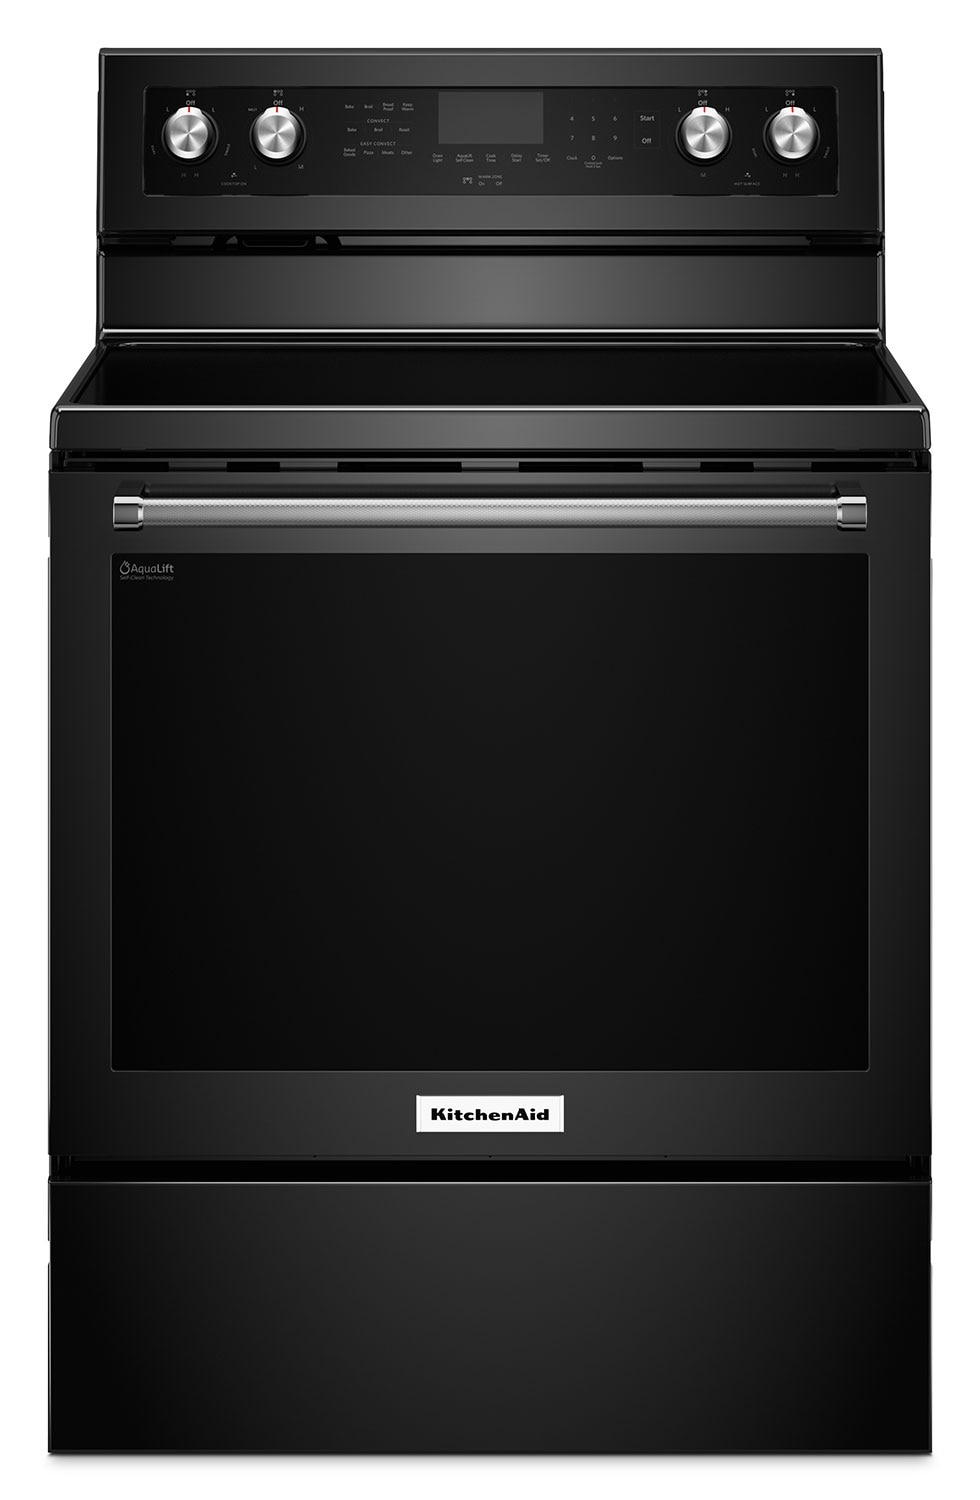 Cooking Products - KitchenAid Black Freestanding Electric Convection Range (6.4 Cu. Ft.) - YKFEG500EBL